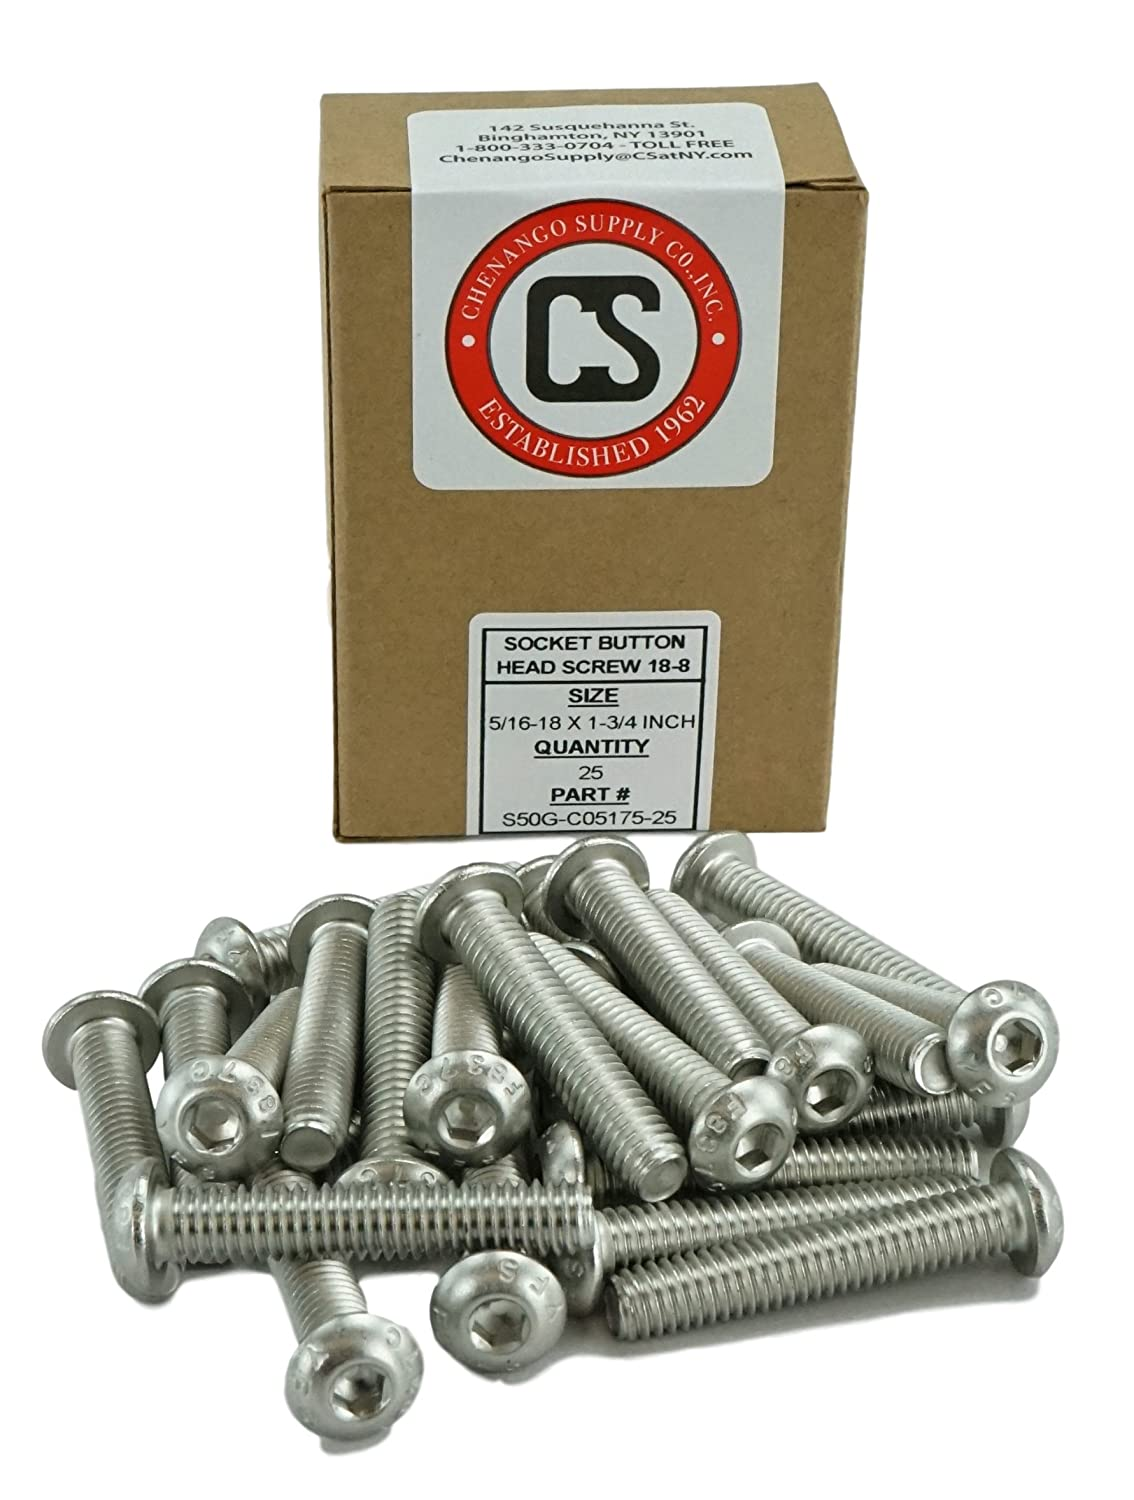 Coarse Thread Stainless Steel 18-8 5//16-18 x 1-1//2 Full Thread Socket Button Head Cap Screws Hex Drive Stainless 5//16-18 x 1-1//2 5//8 to 3 Available